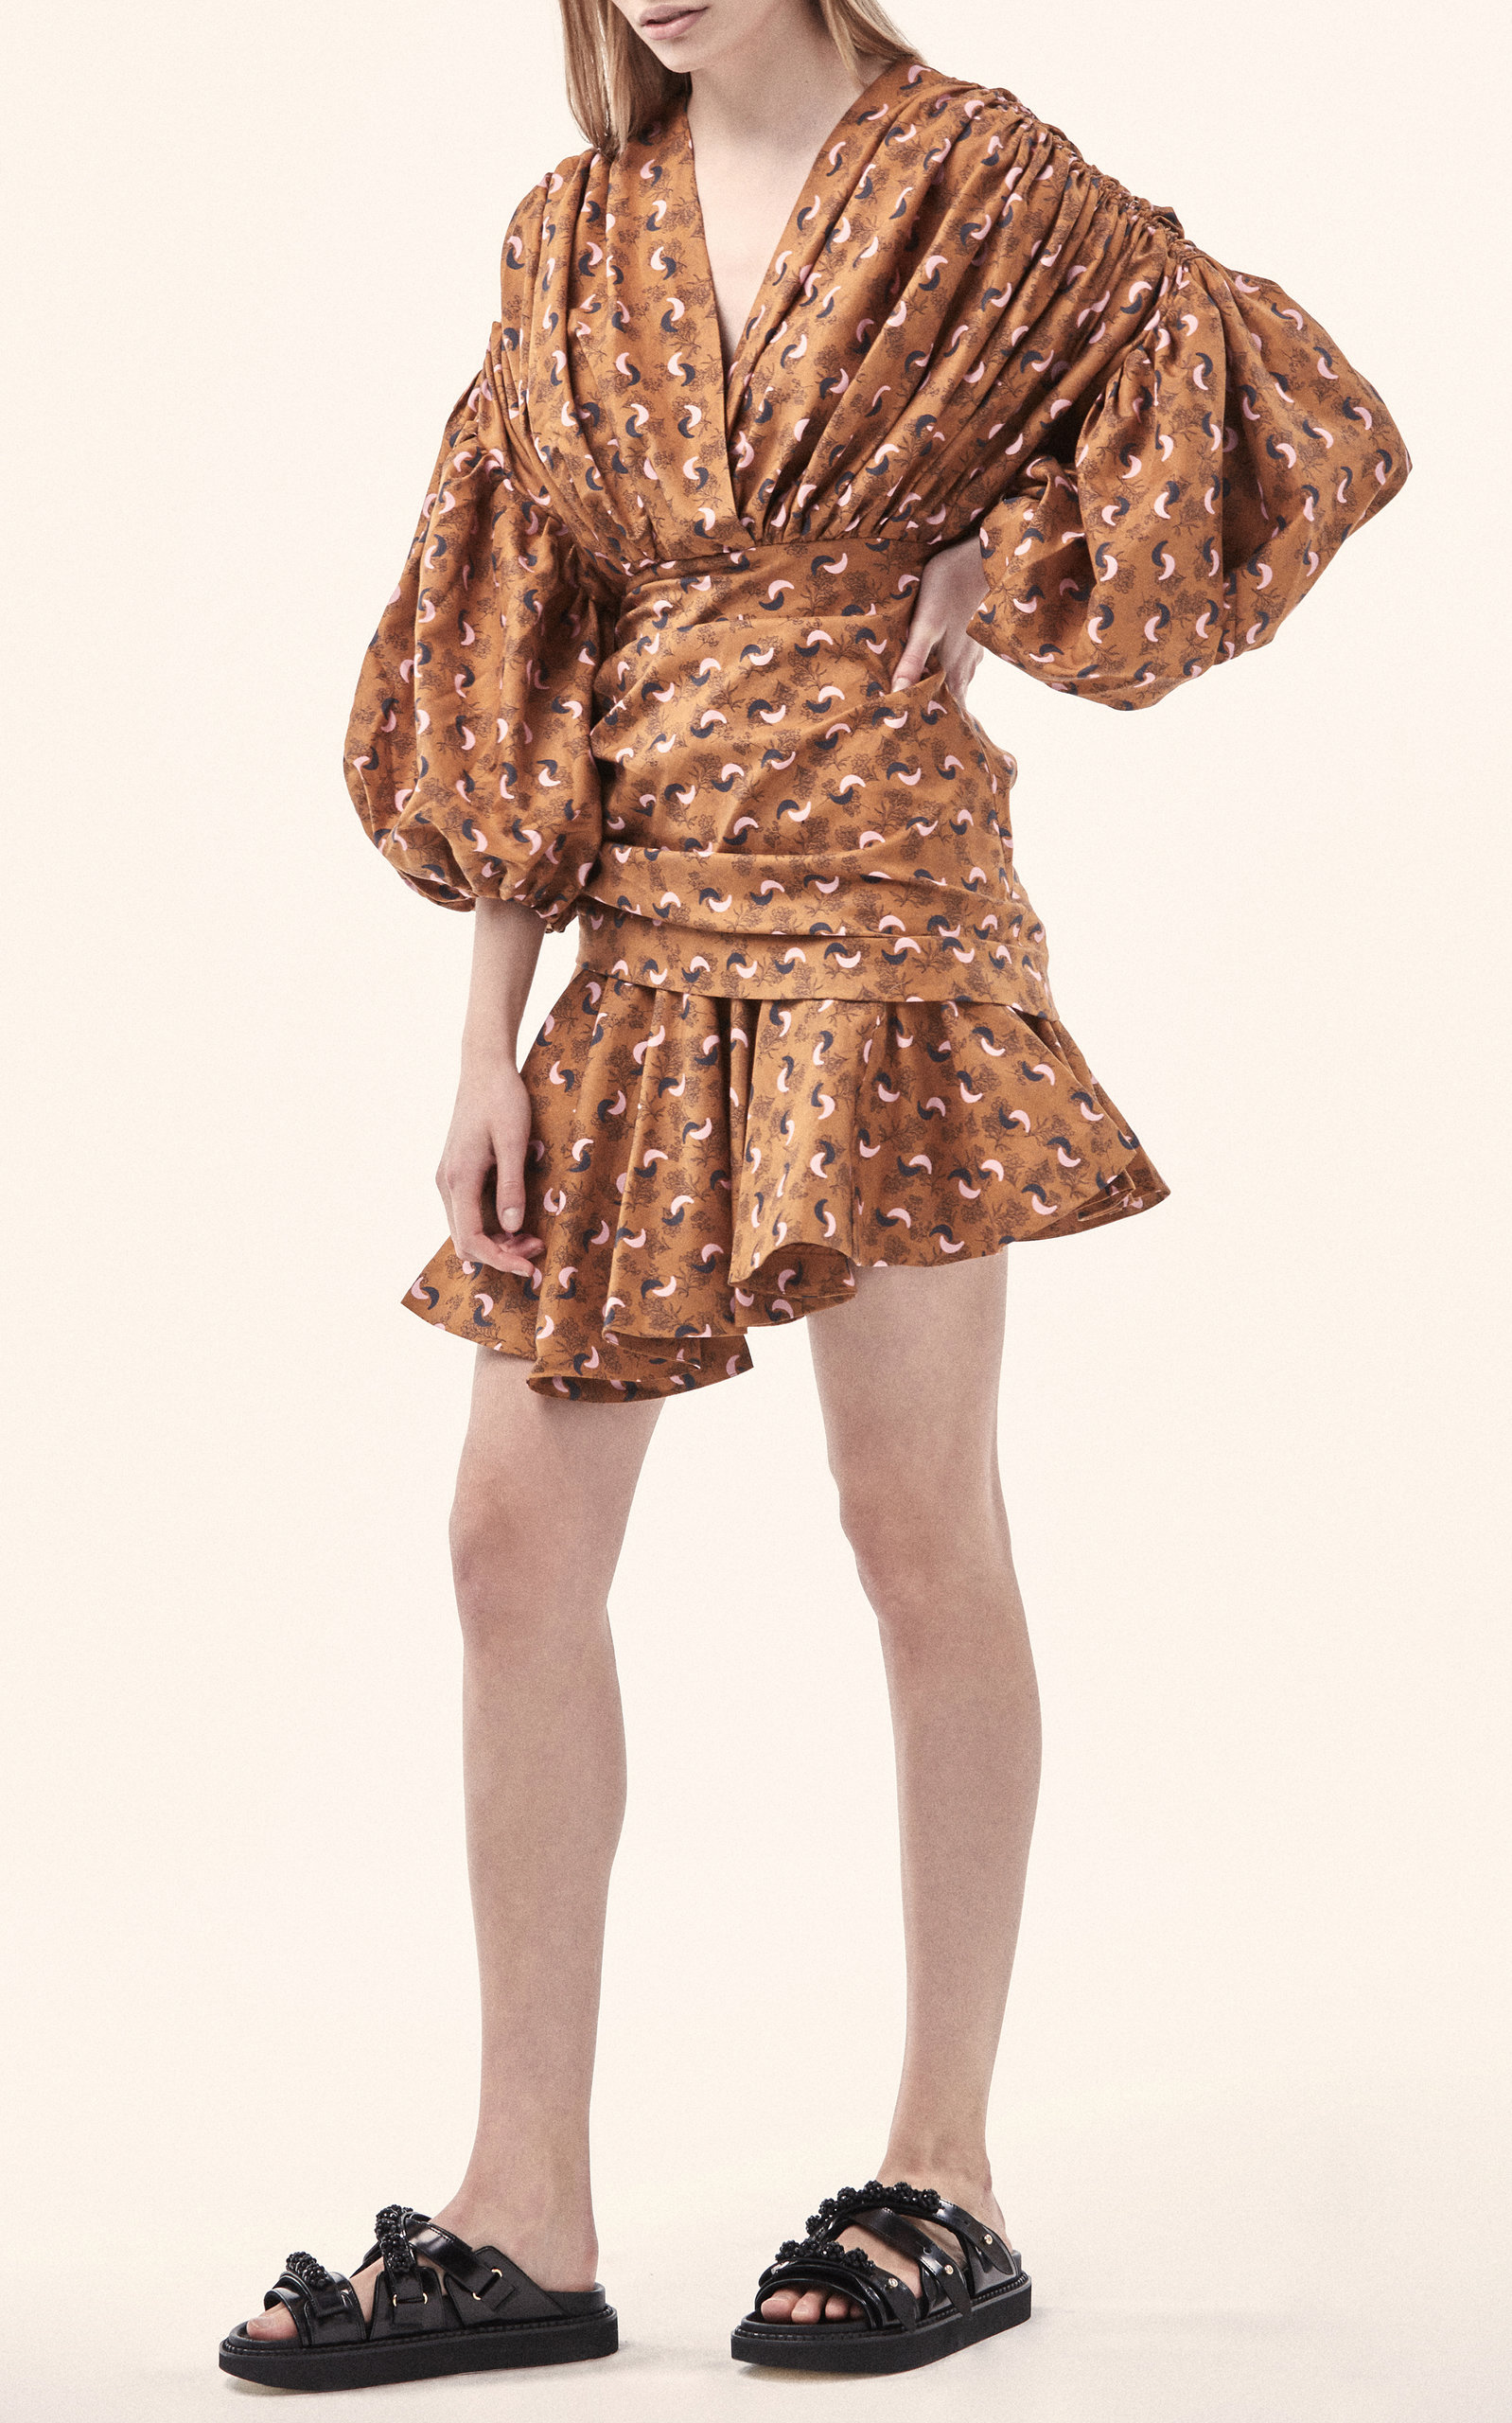 Dorset Long Sleeve Mini Dress Acler Discount Pictures Free Shipping 2018 5y0UjaVc